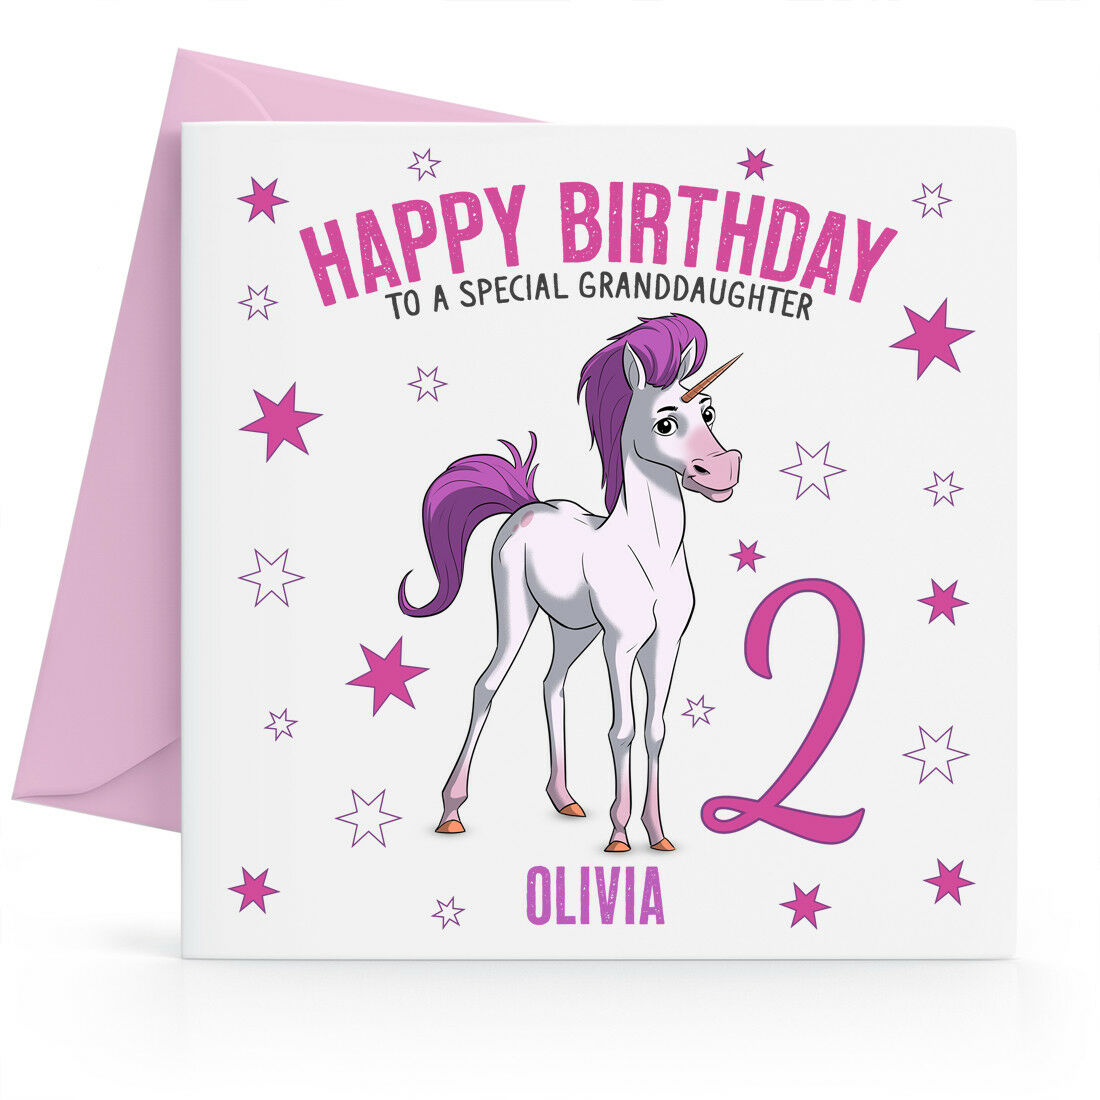 Details About Personalised Girls 2nd Birthday Card Daughter Granddaughter Niece Message Name